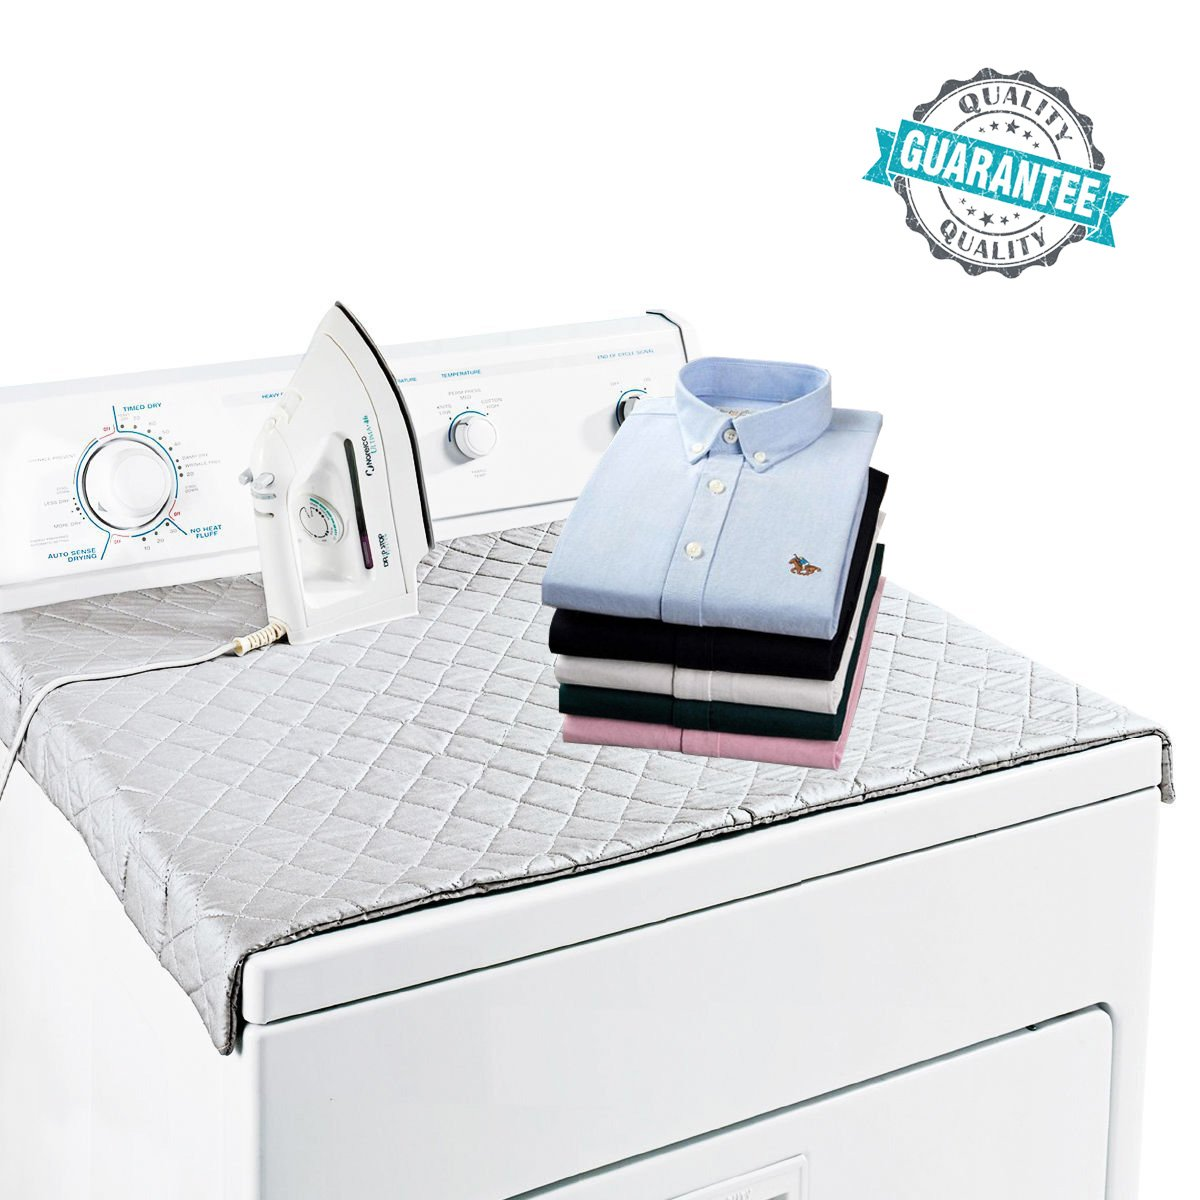 HOMILA Ironing Mat Portable Ironing Blanket Double Strength Magnetic Mat Laundry Pad, 33'' x 18.5'', Quilted Washer Dryer Heat Resistant Ironing Pad